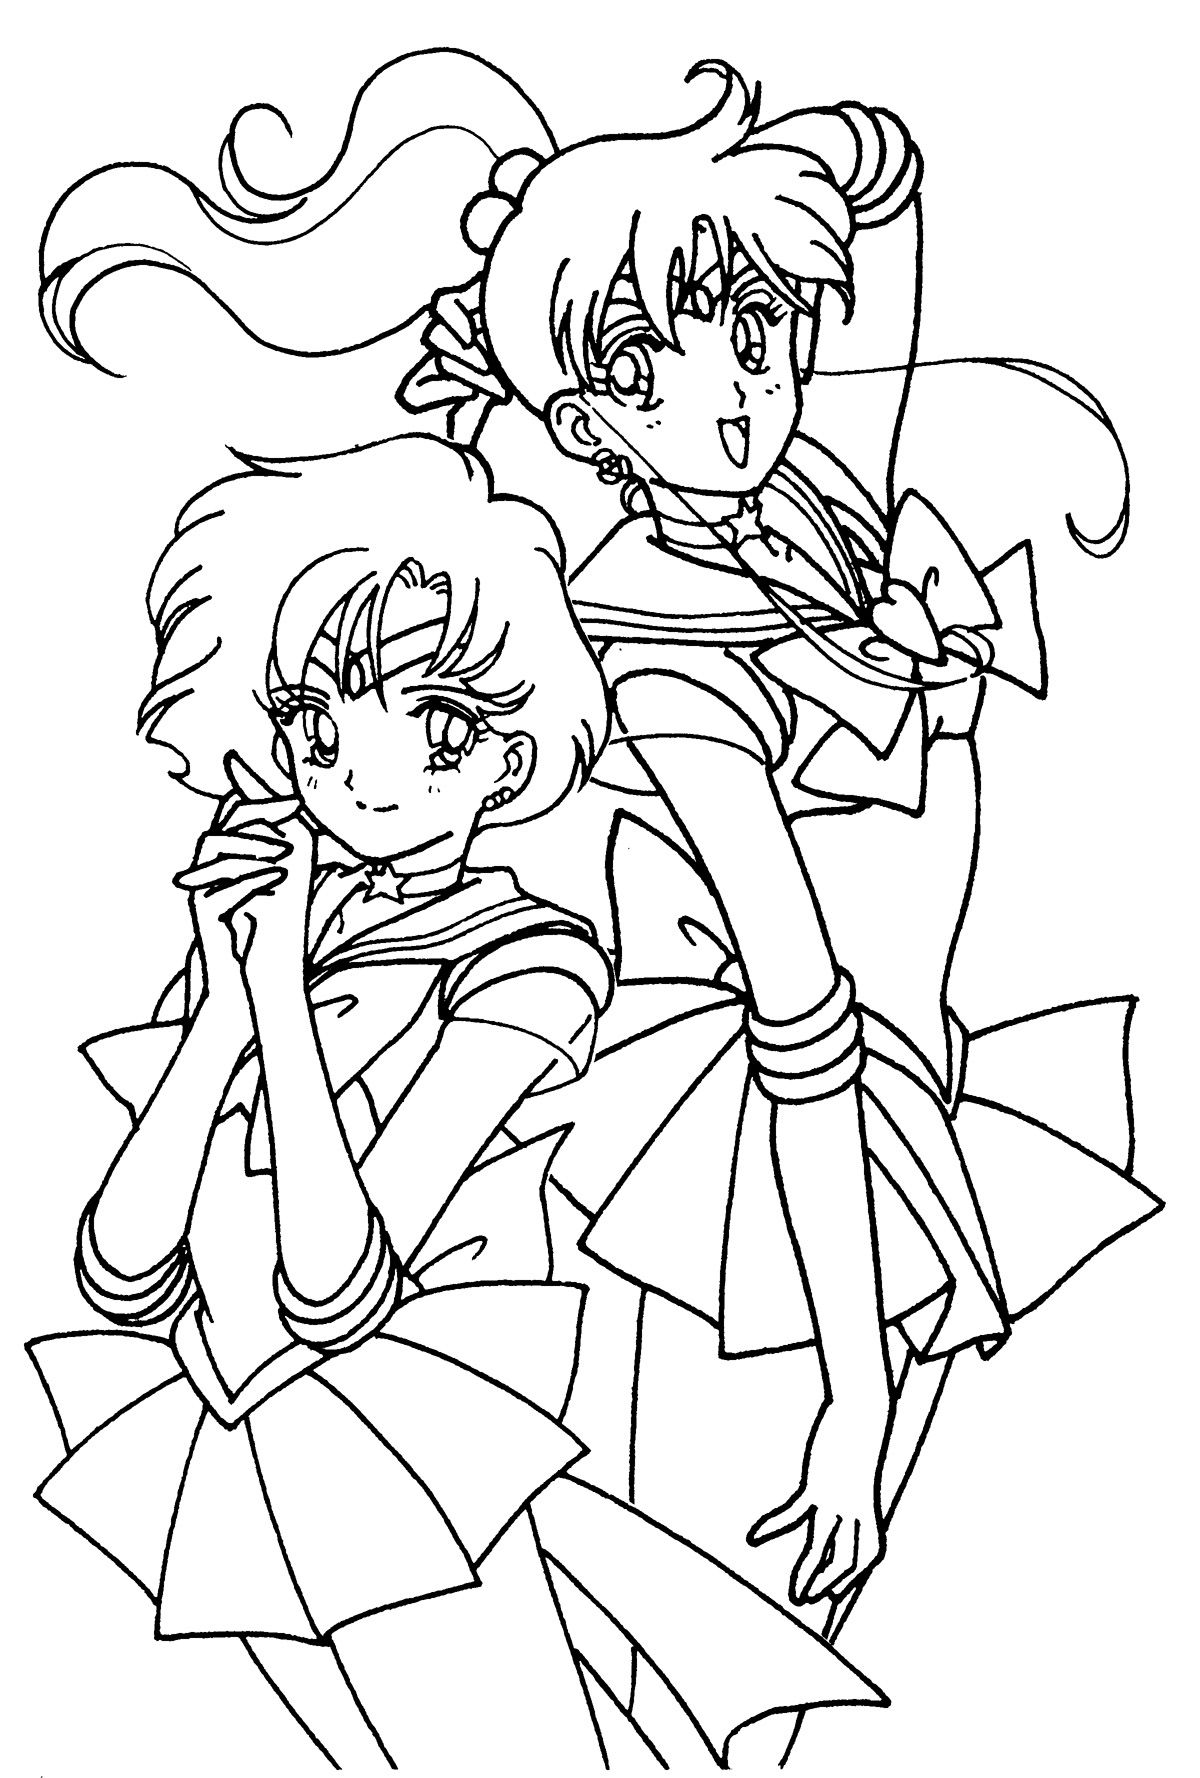 sailor mercure et jupiter | amazing coloring pictures | Pinterest